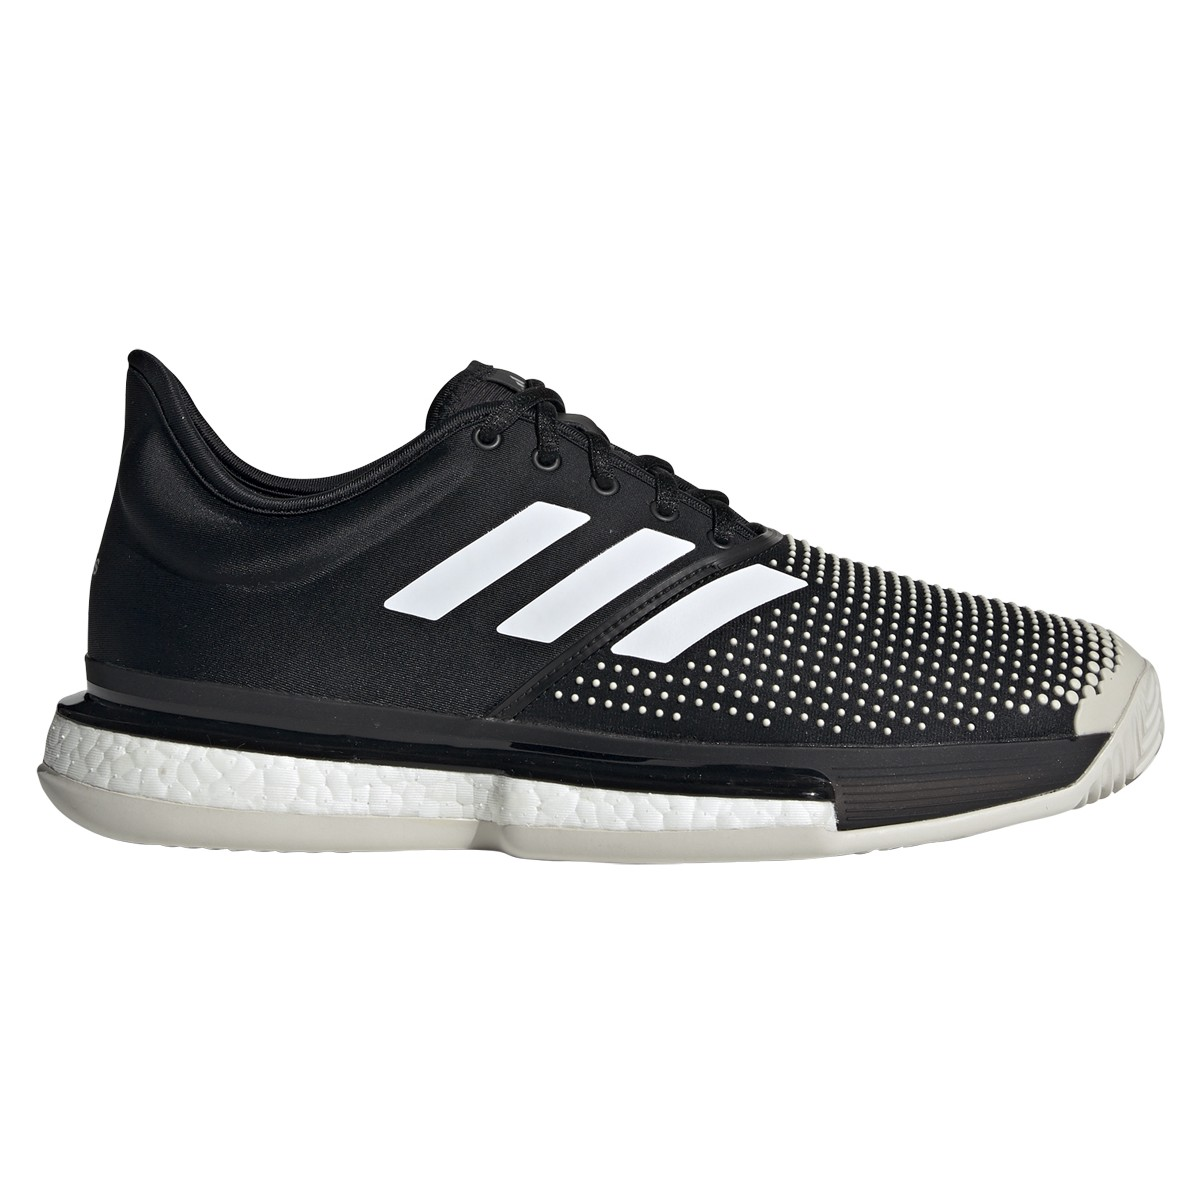 Adidas Solecourt Boost Clay Court Shoes Shoes Tennispro